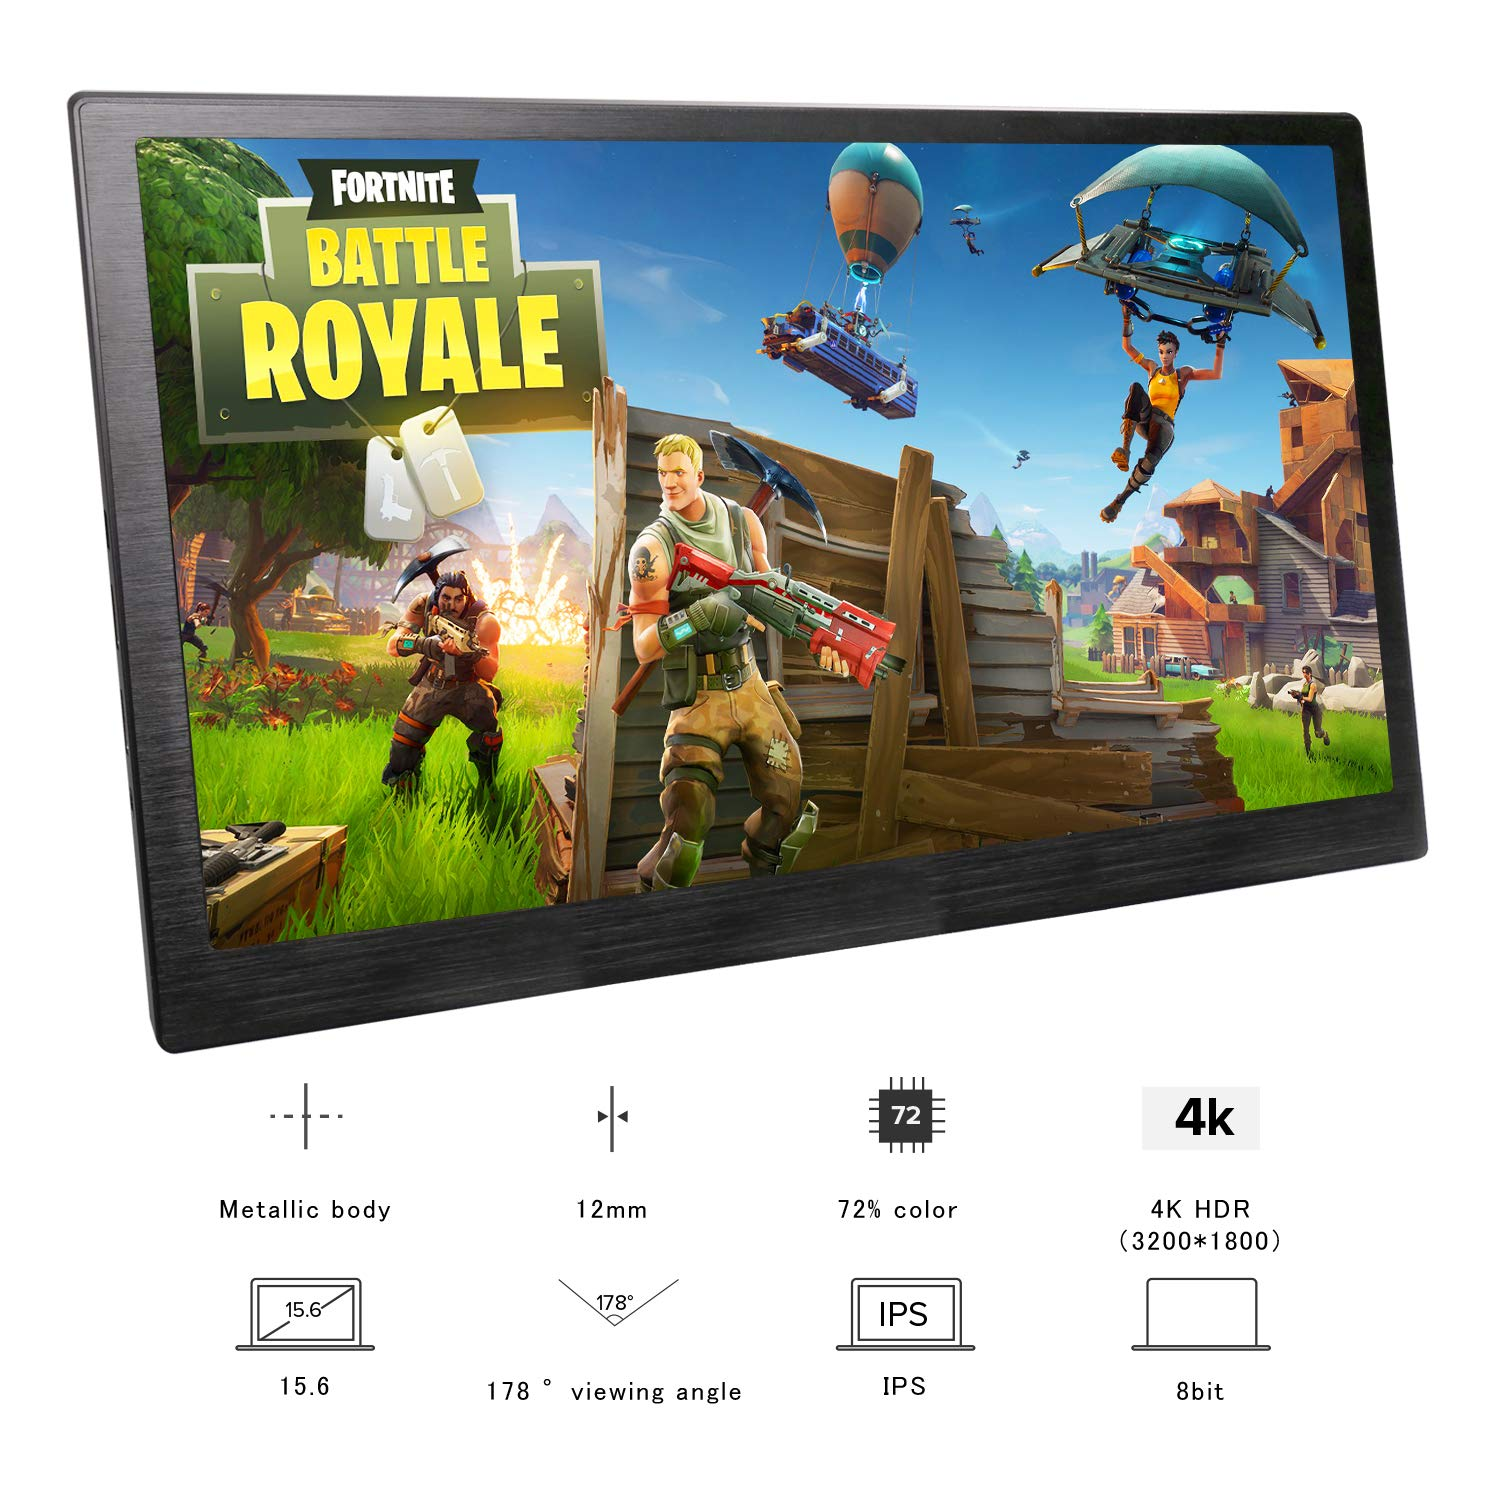 Fortnite ps4 screen size